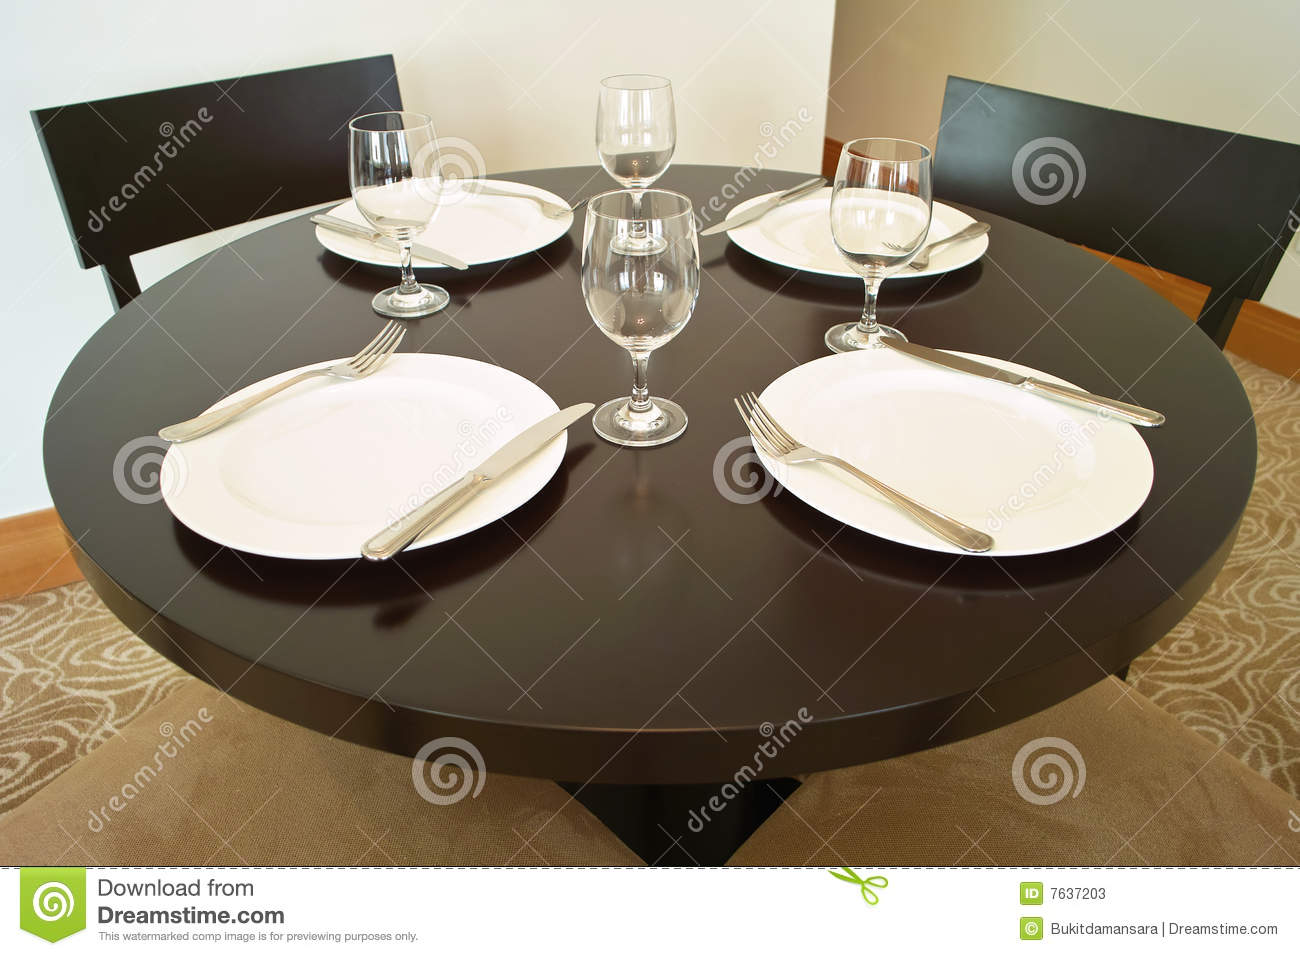 Round Table With Plates amp Glass Stock Photos Image 7637203 : round table plates glass 7637203 from dreamstime.com size 1300 x 956 jpeg 123kB